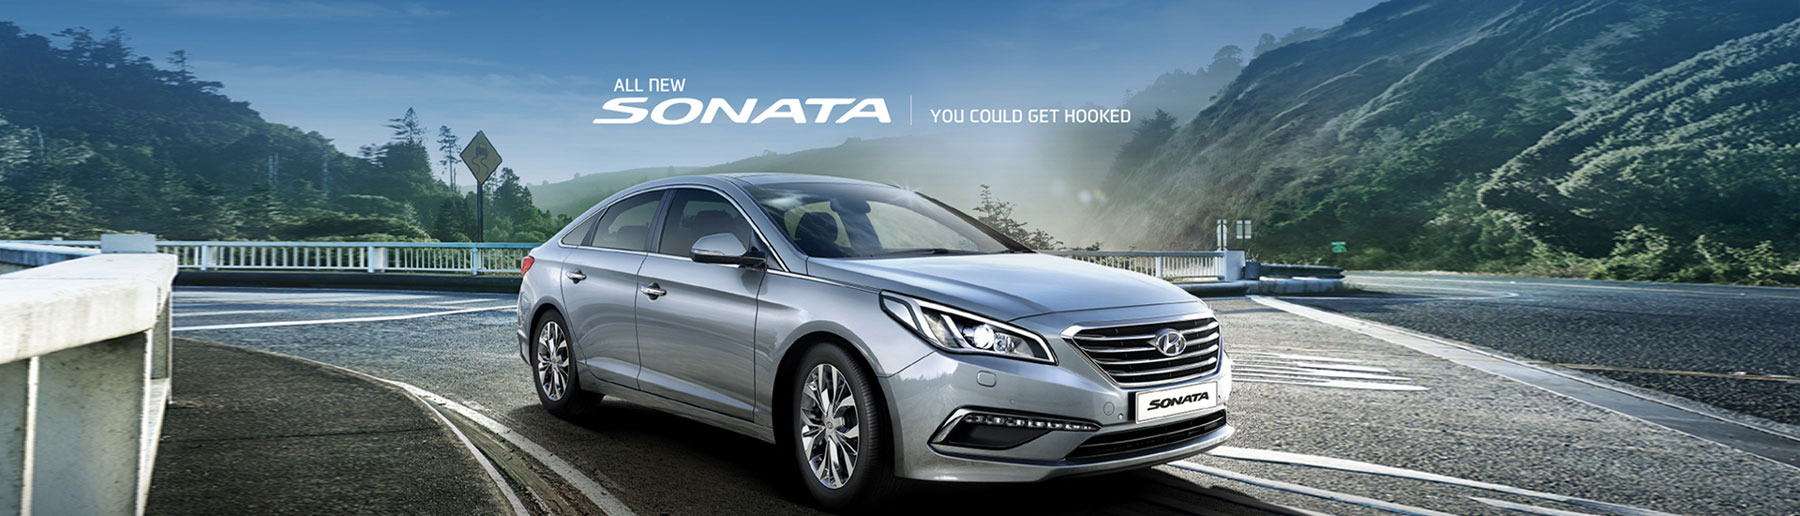 All New Hyundai Sonata